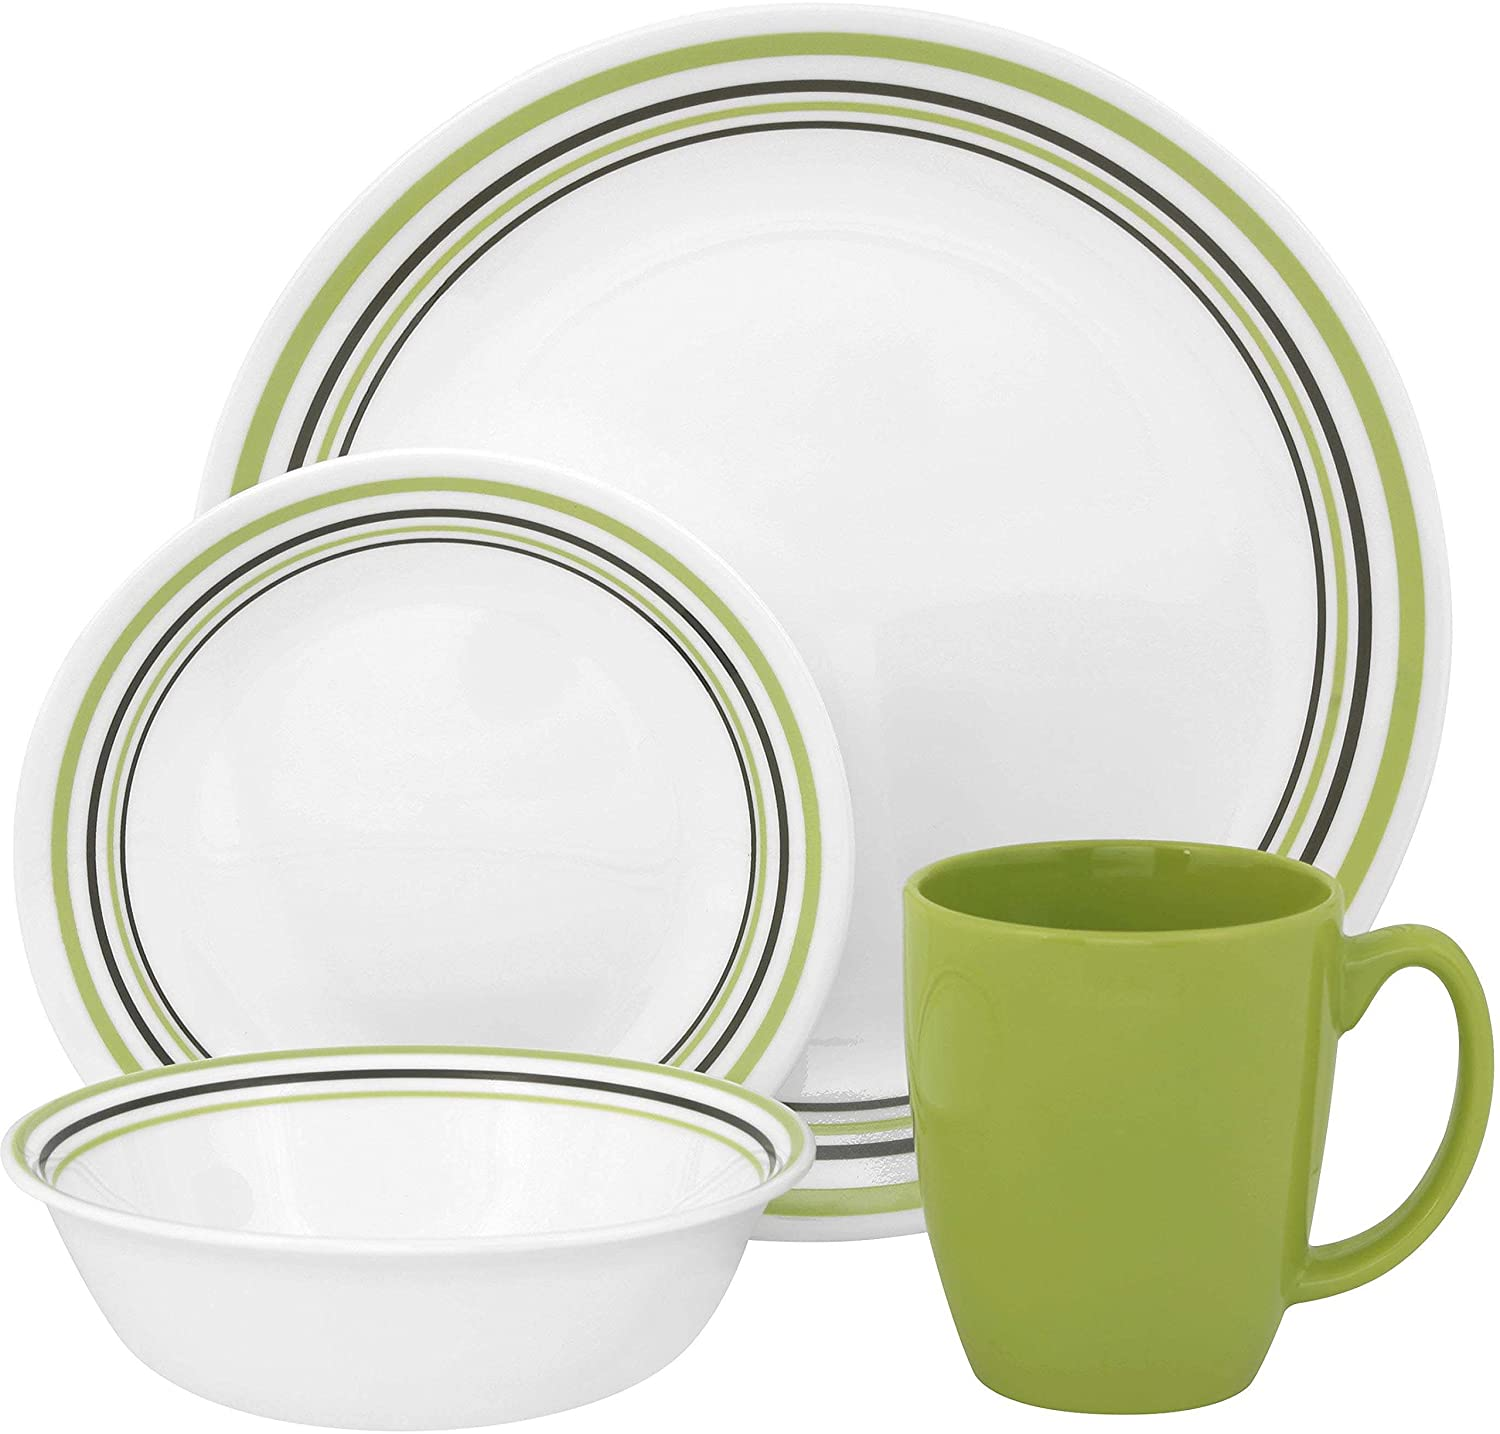 Amazon.com | Corelle Livingware 16-Piece Dinner Set Service for 4 Dinnerware Sets Dinnerware Sets  sc 1 st  Amazon.com & Amazon.com | Corelle Livingware 16-Piece Dinner Set Service for 4 ...